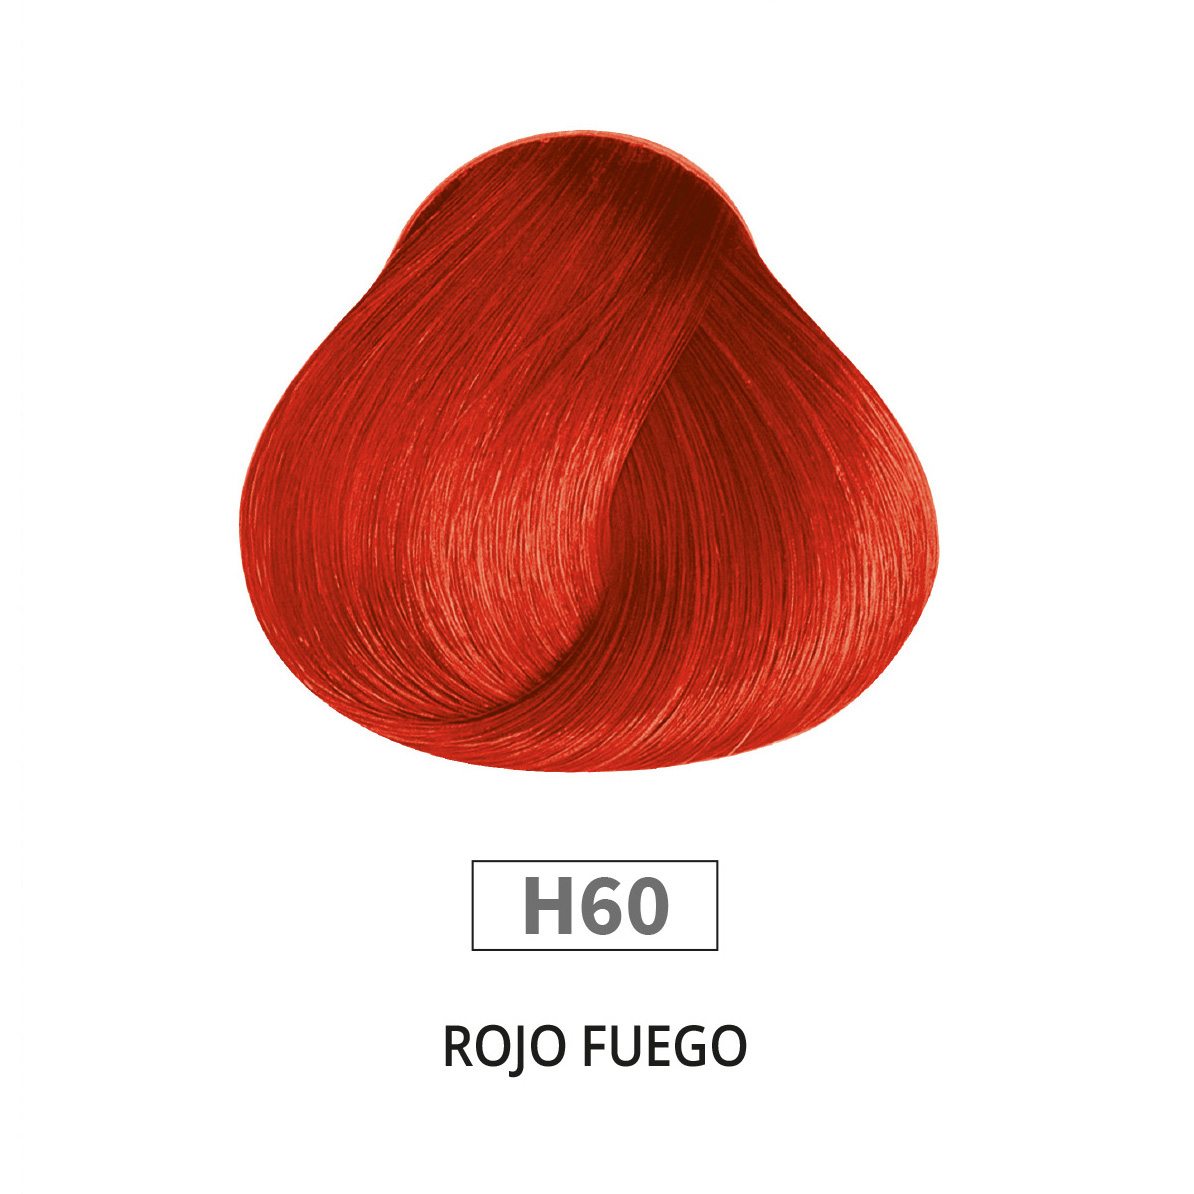 Rojo Fuego H60 - Yanguas Professional